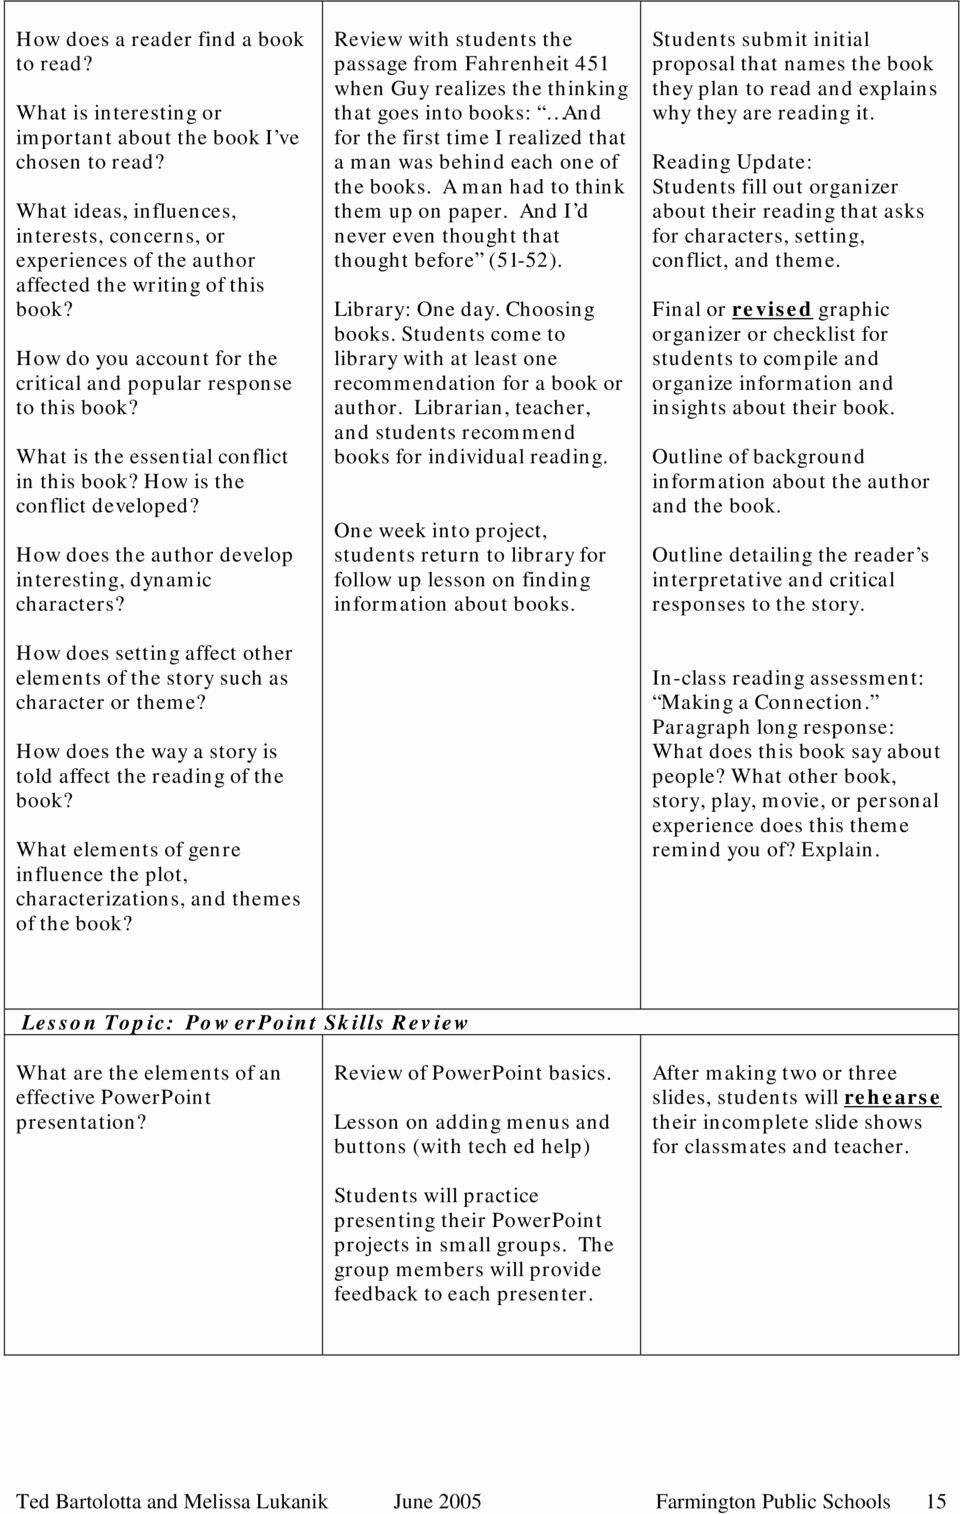 Fahrenheit 451 Literary Devices Worksheet Inspirational Literature and the Human Experience Fahrenheit 451 and